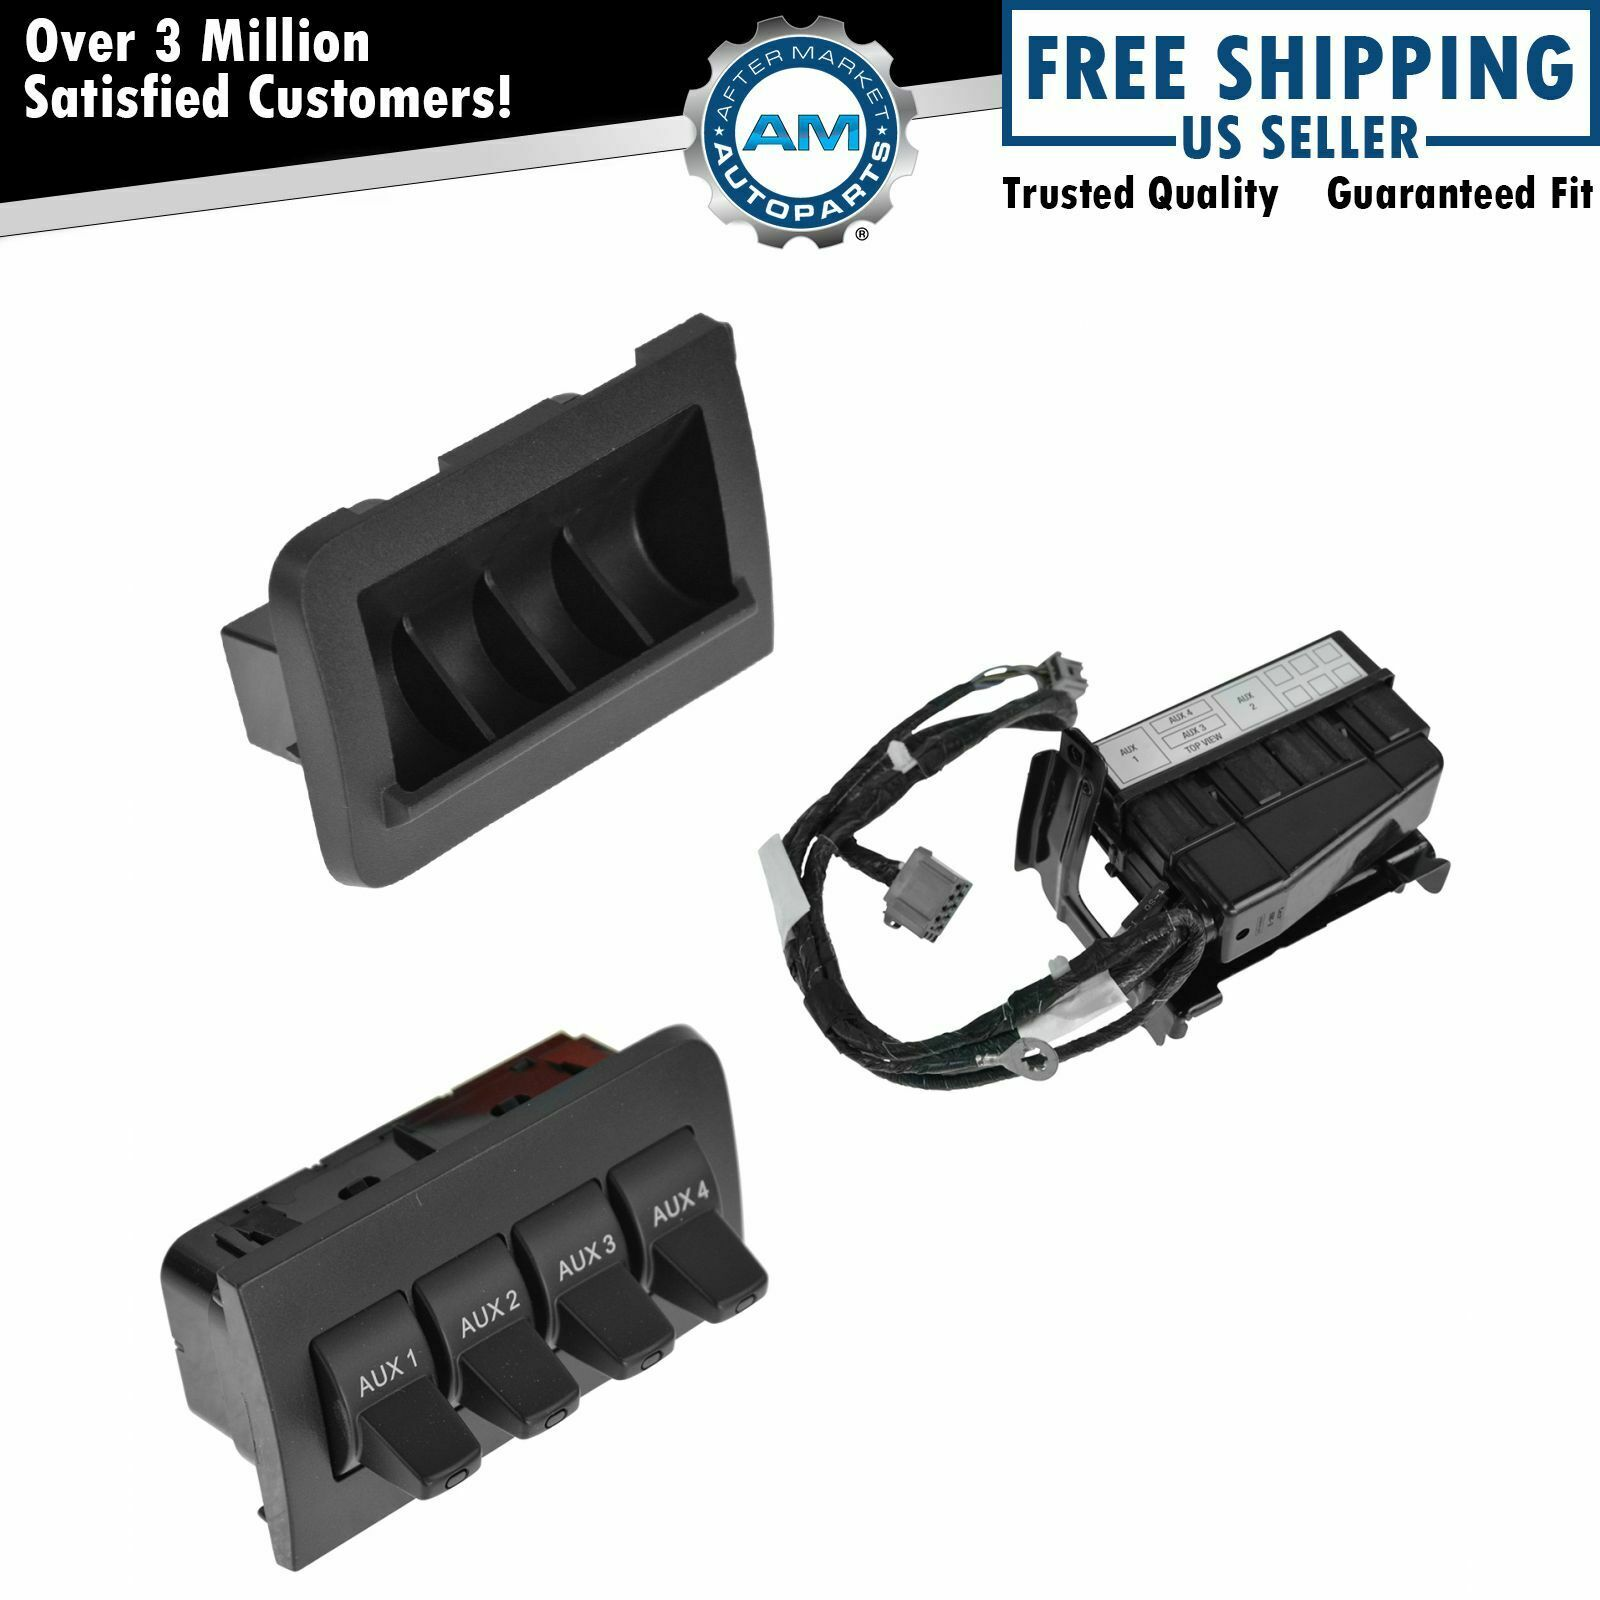 2012 Ford Upfitter Switches Switch Wiring Oem In Dash Kit For Super Duty 1200x1200